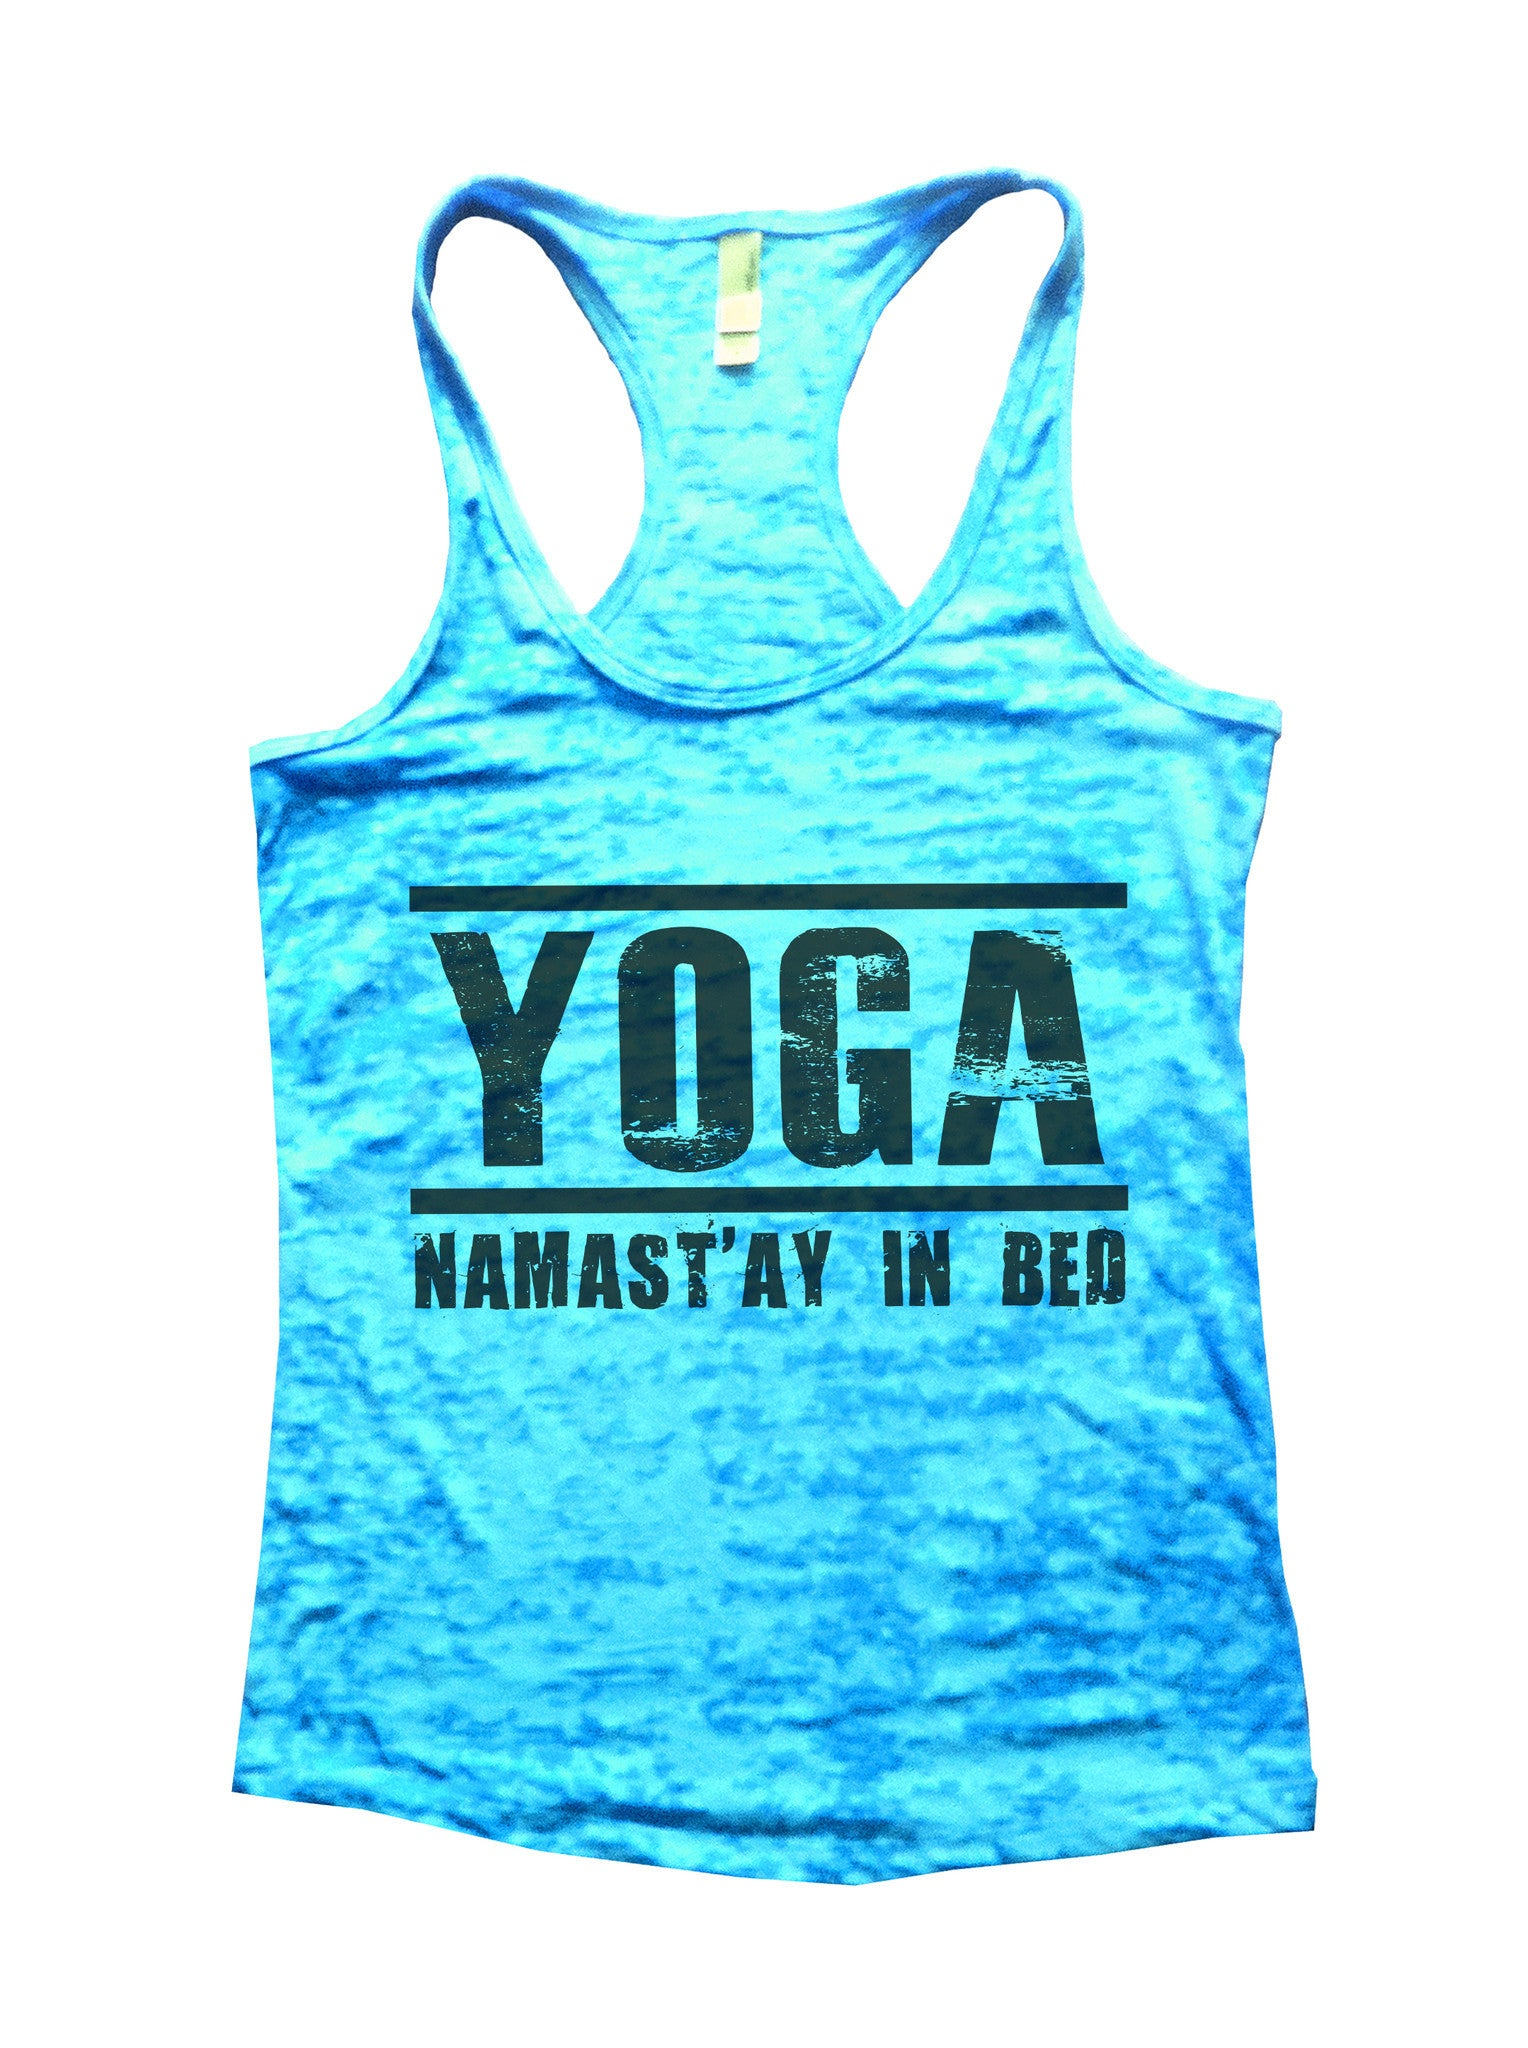 Yoga Namast'ay In Bed Burnout Tank Top By BurnoutTankTops.com - 649 - Funny Shirts Tank Tops Burnouts and Triblends  - 1